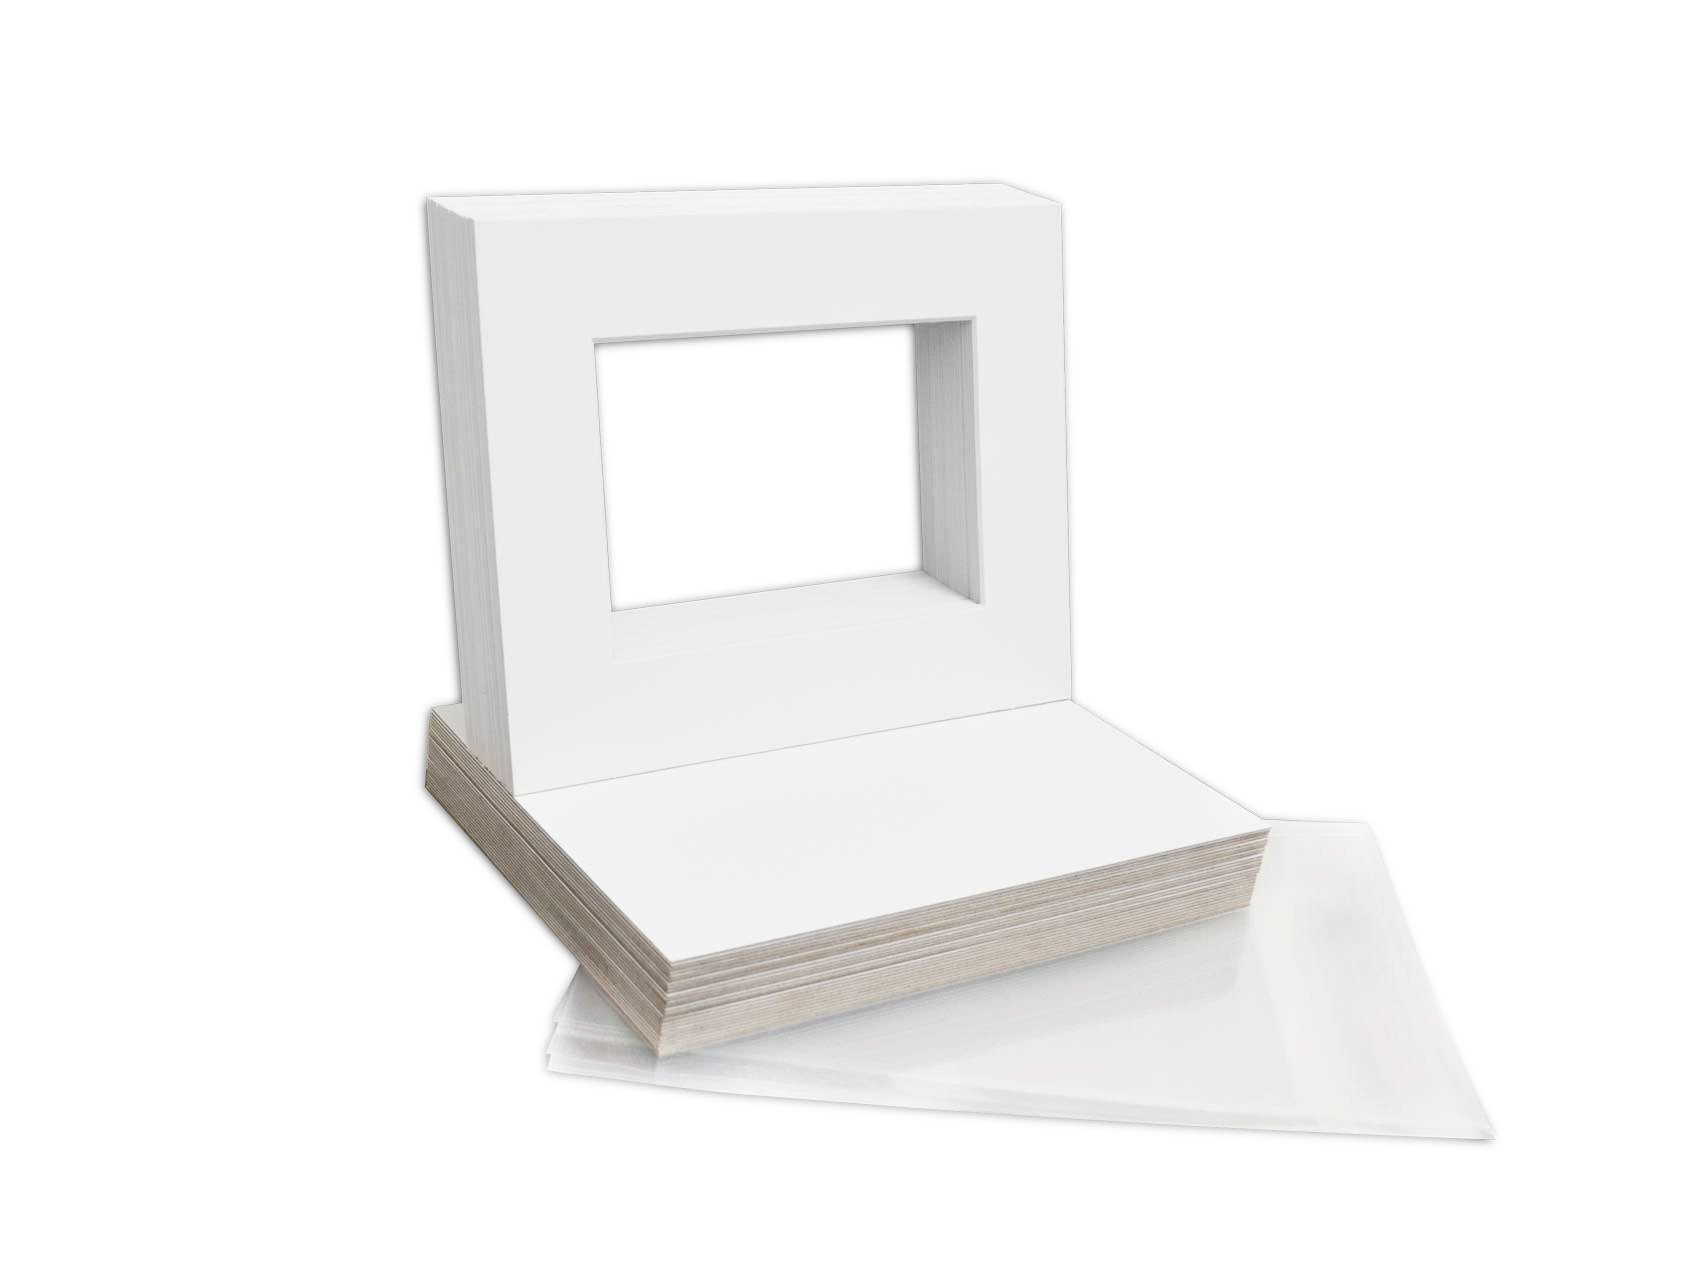 Mat Board Center, 8x10 Picture Mat Sets for 5x7 Photo. Includes a Pack of 50 White Core Bevel Pre-Cut White Core Matte & 50 Backing Board & 50 Clear Bags (White) by MBC MAT BOARD CENTER